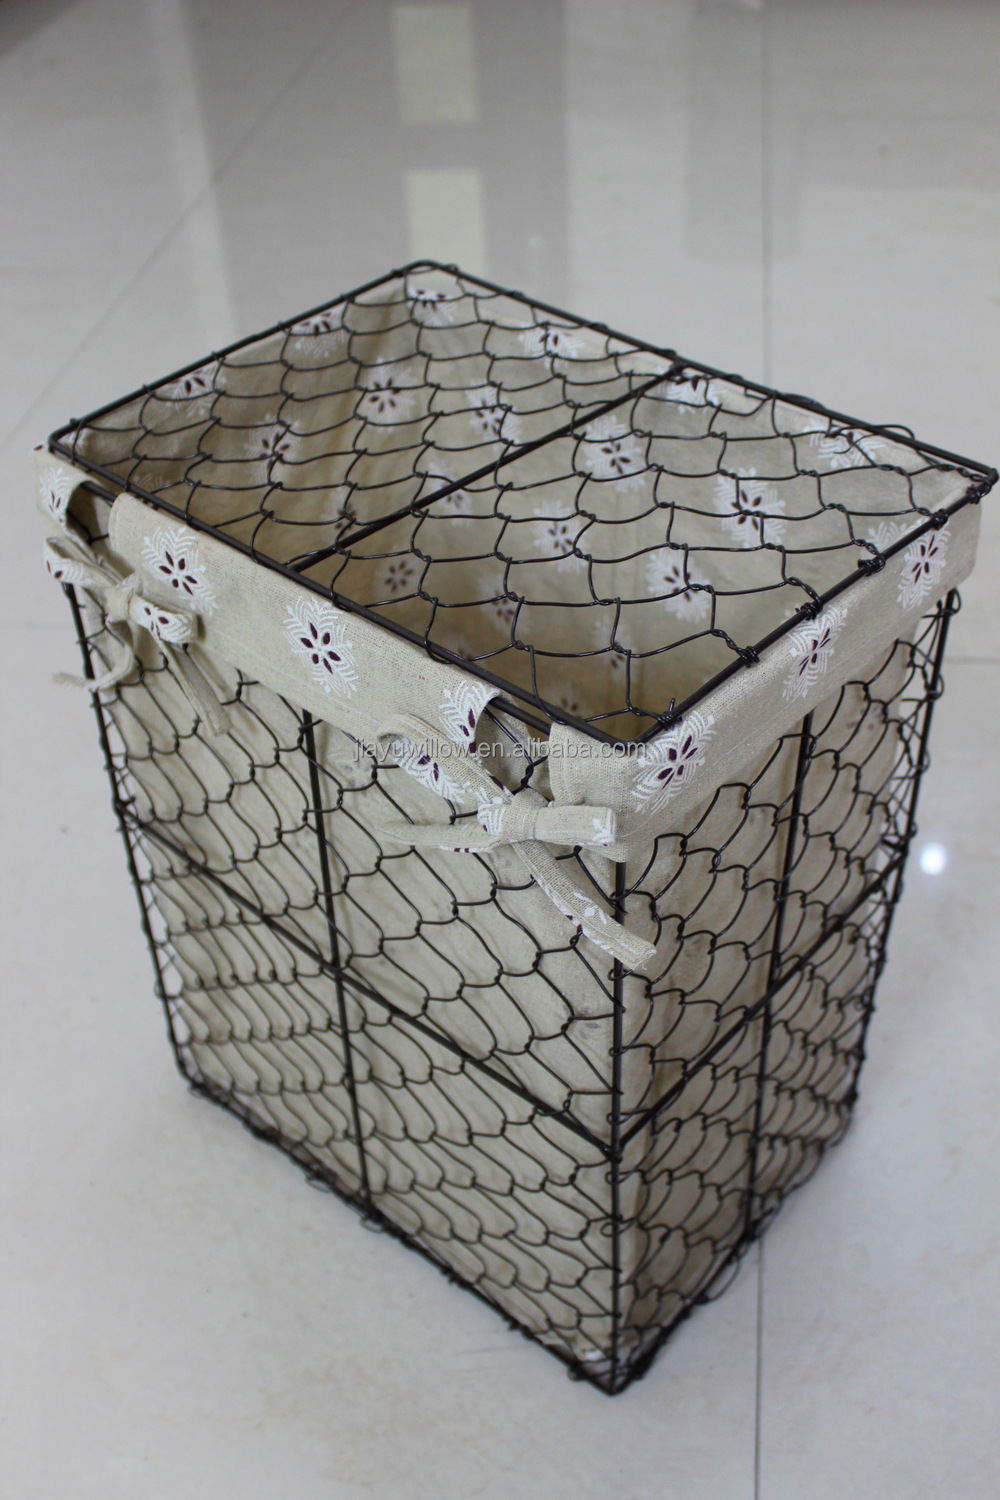 Handmade Fabric Storage Baskets : Handmade wire storage basket with cover laundry